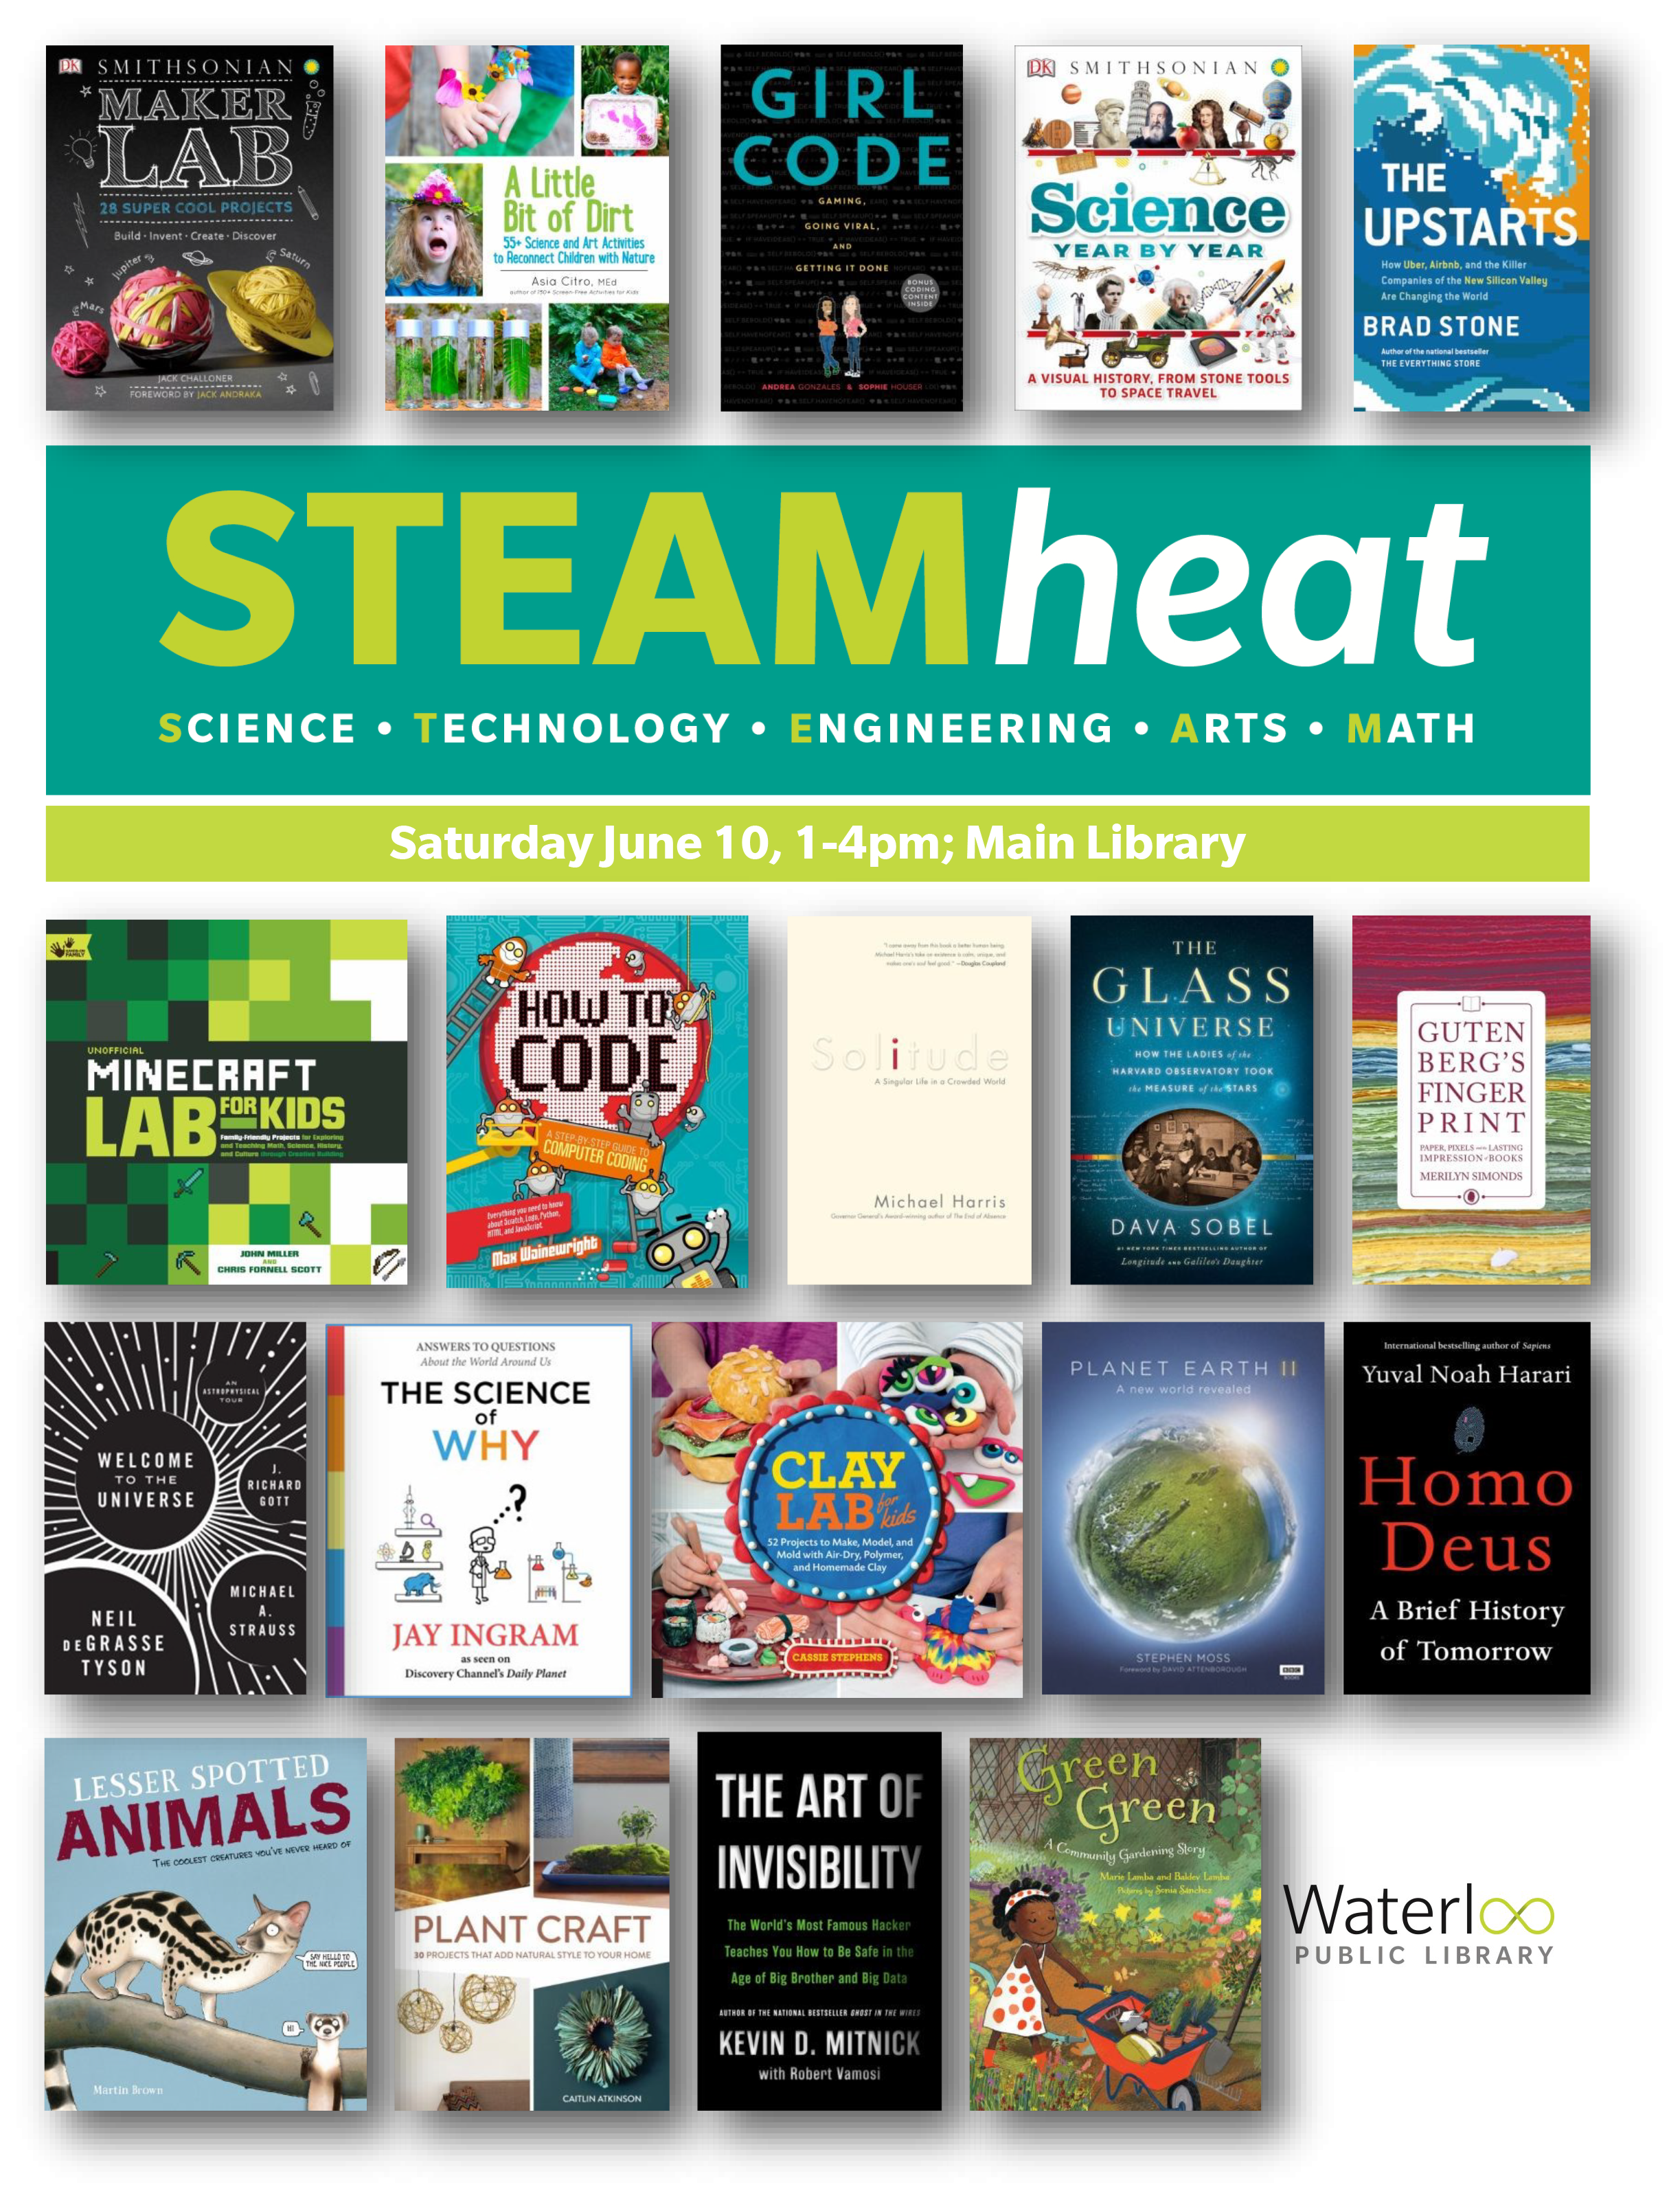 STEAM heat 2017 reading list book covers